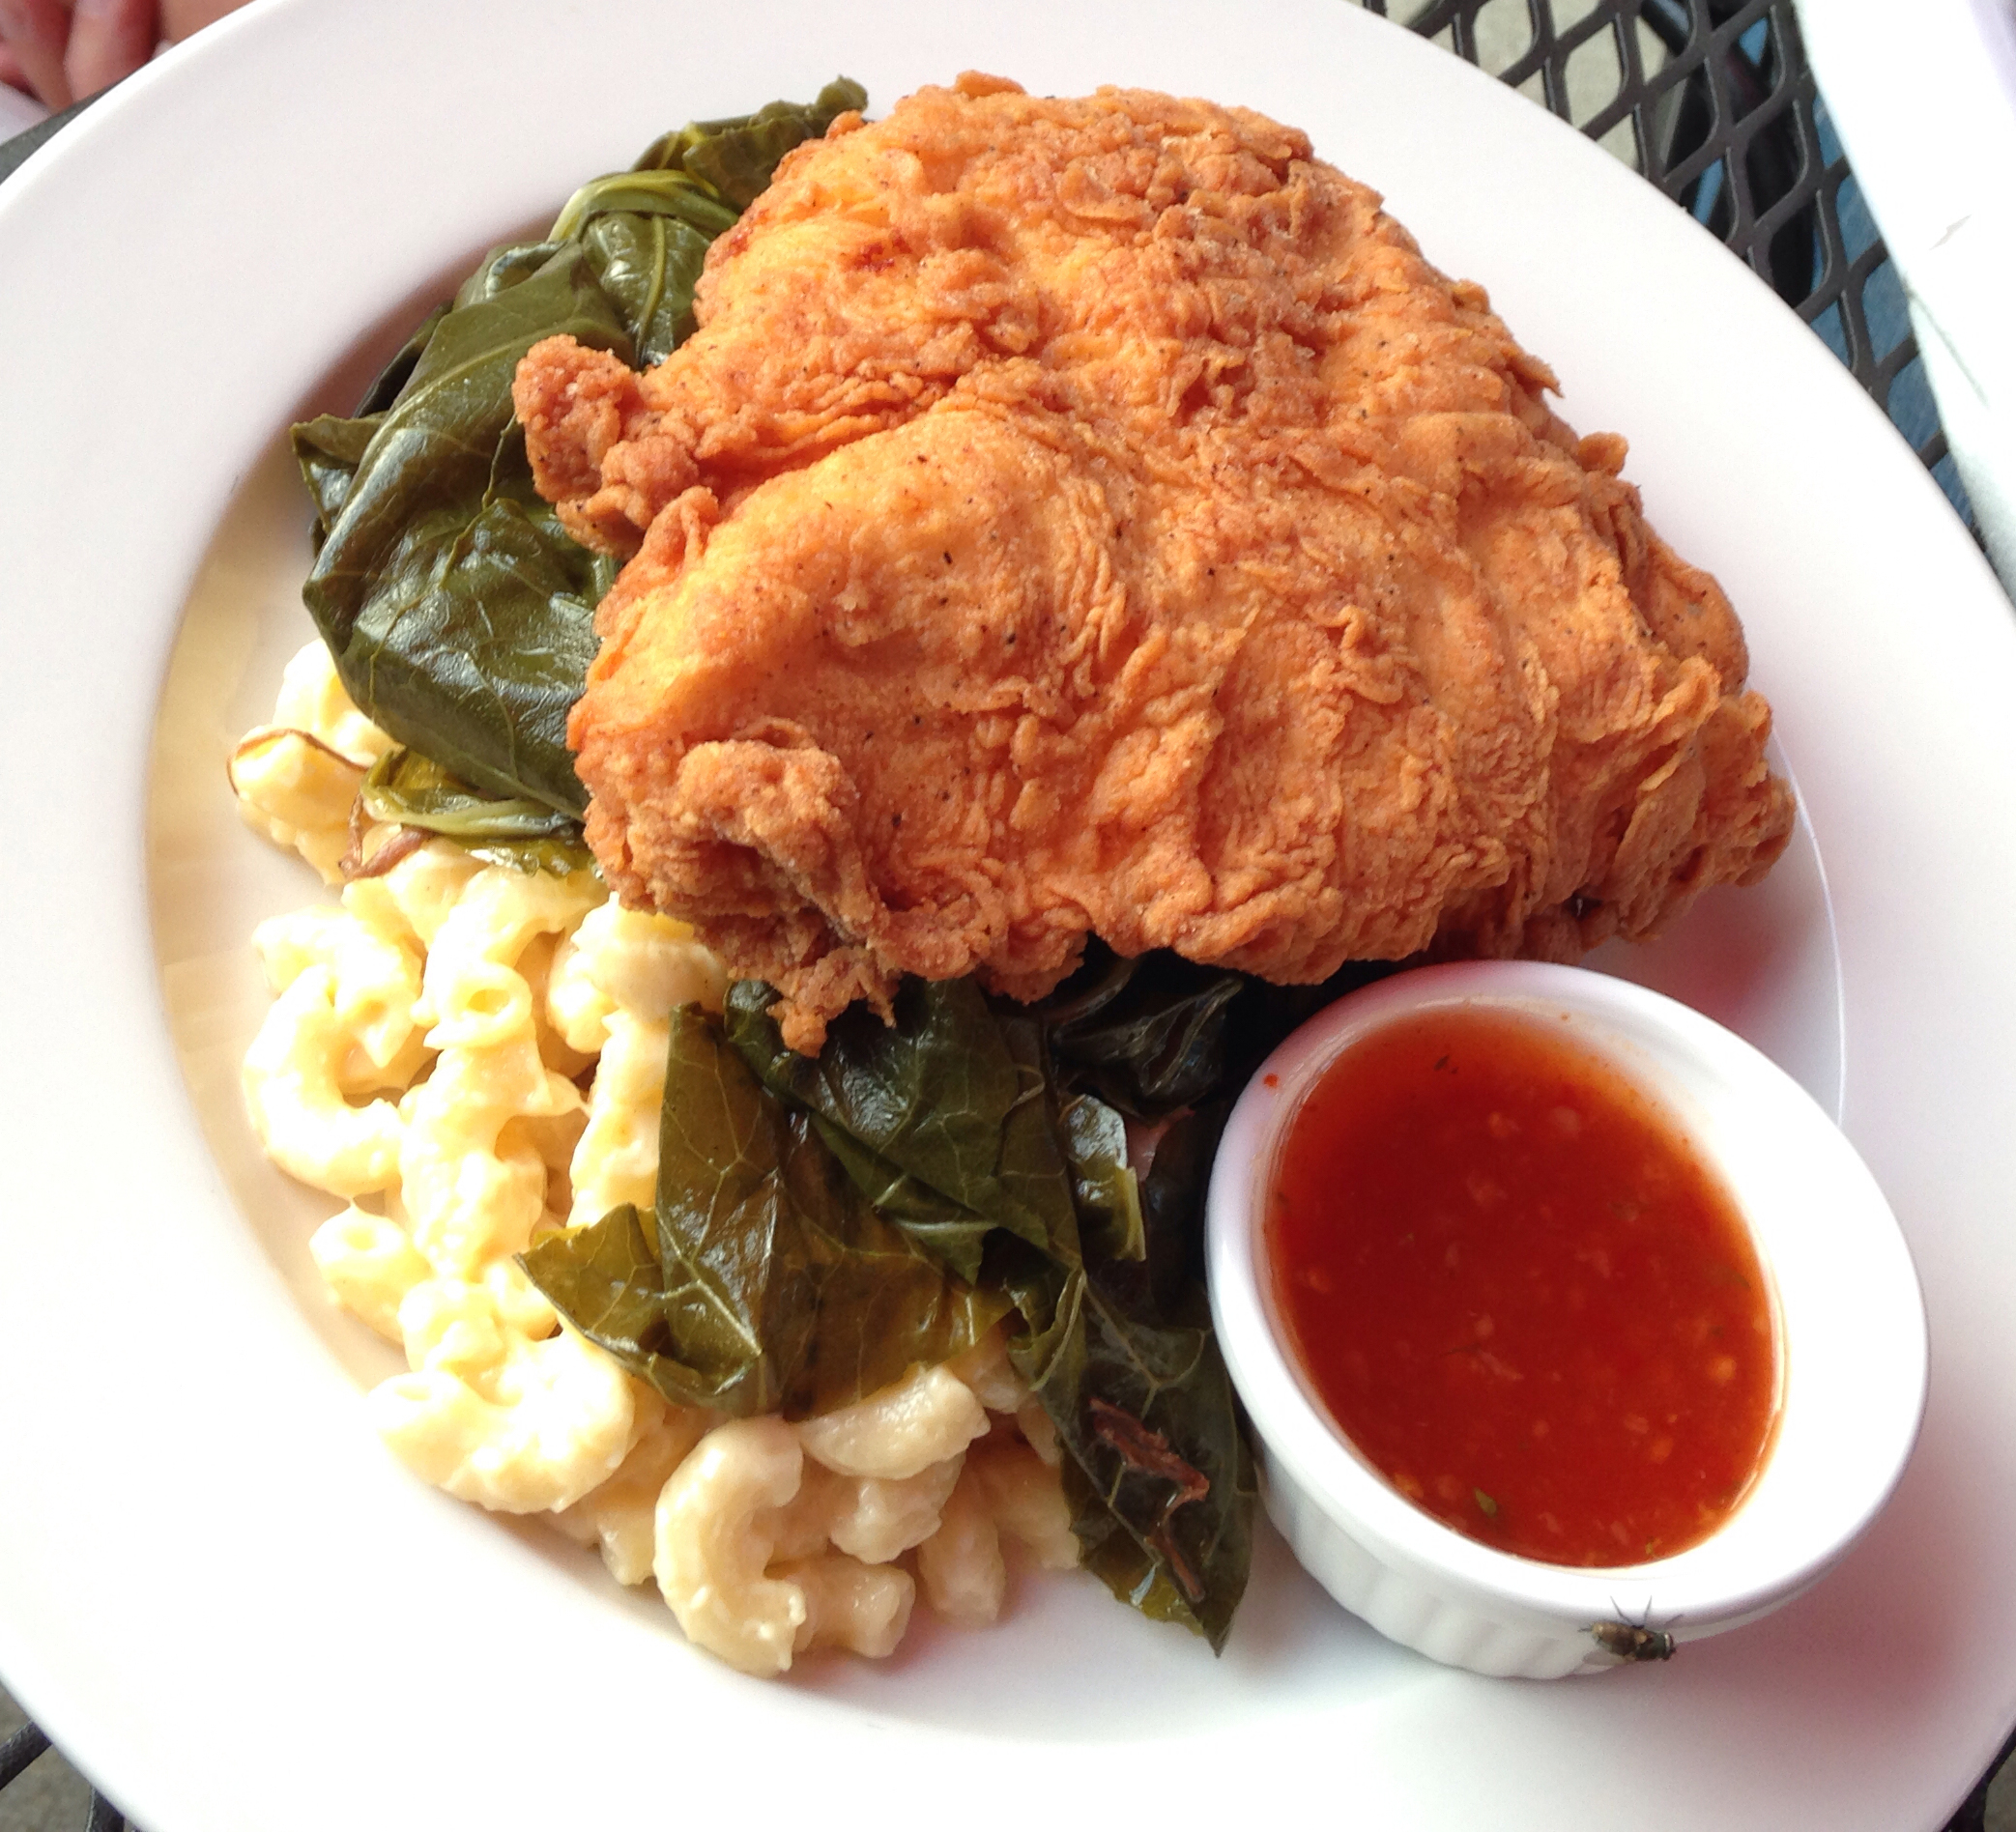 Fried chicken at the Coach Lamp